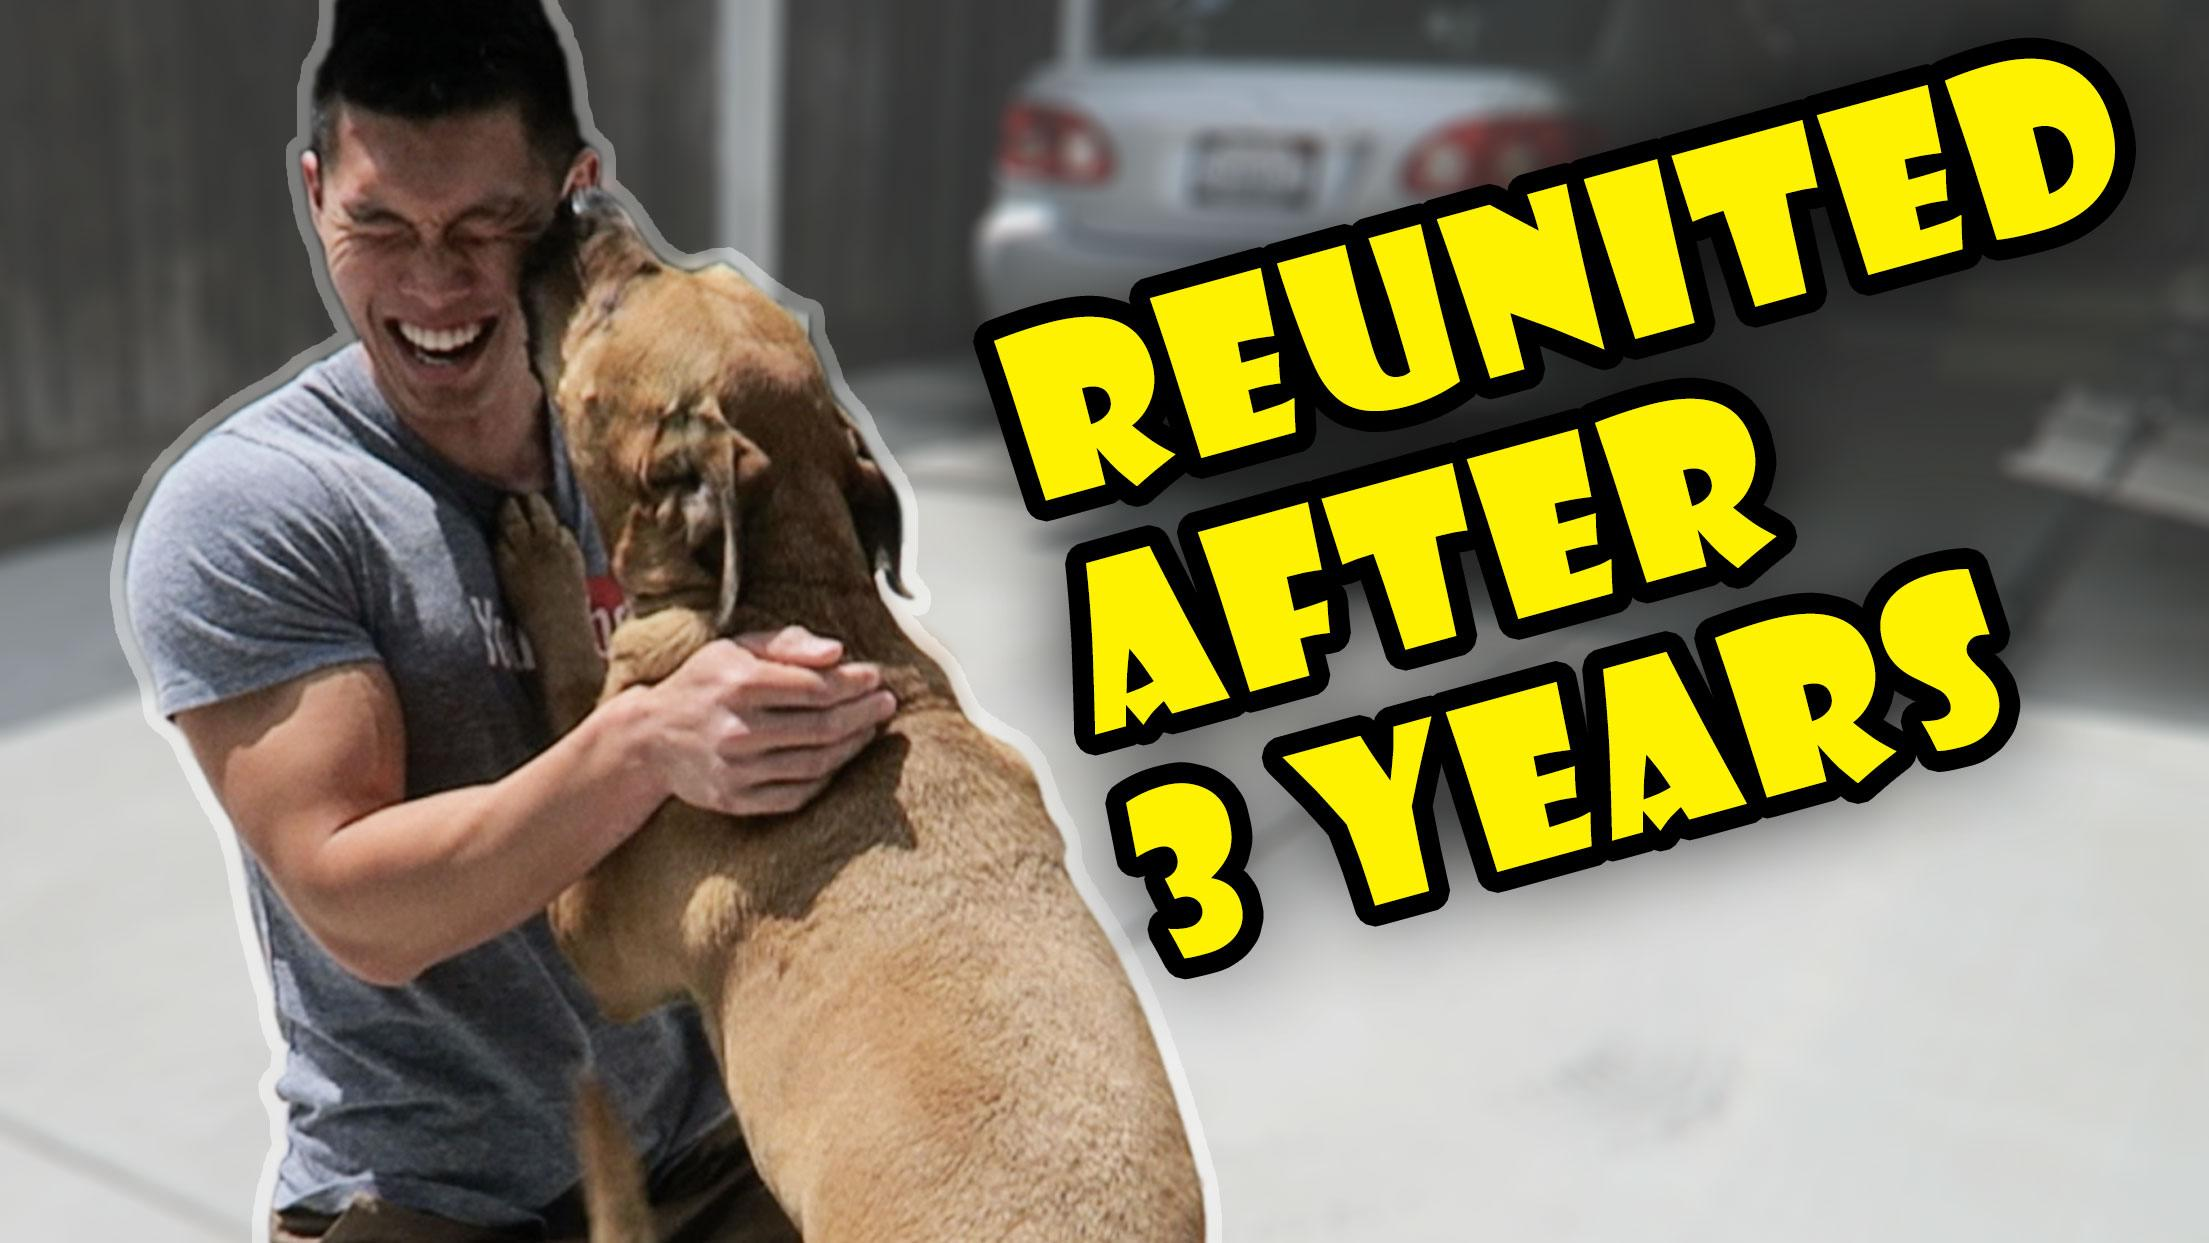 DOG REUNITED AFTER 3 YRS APART | Meets New Puppy